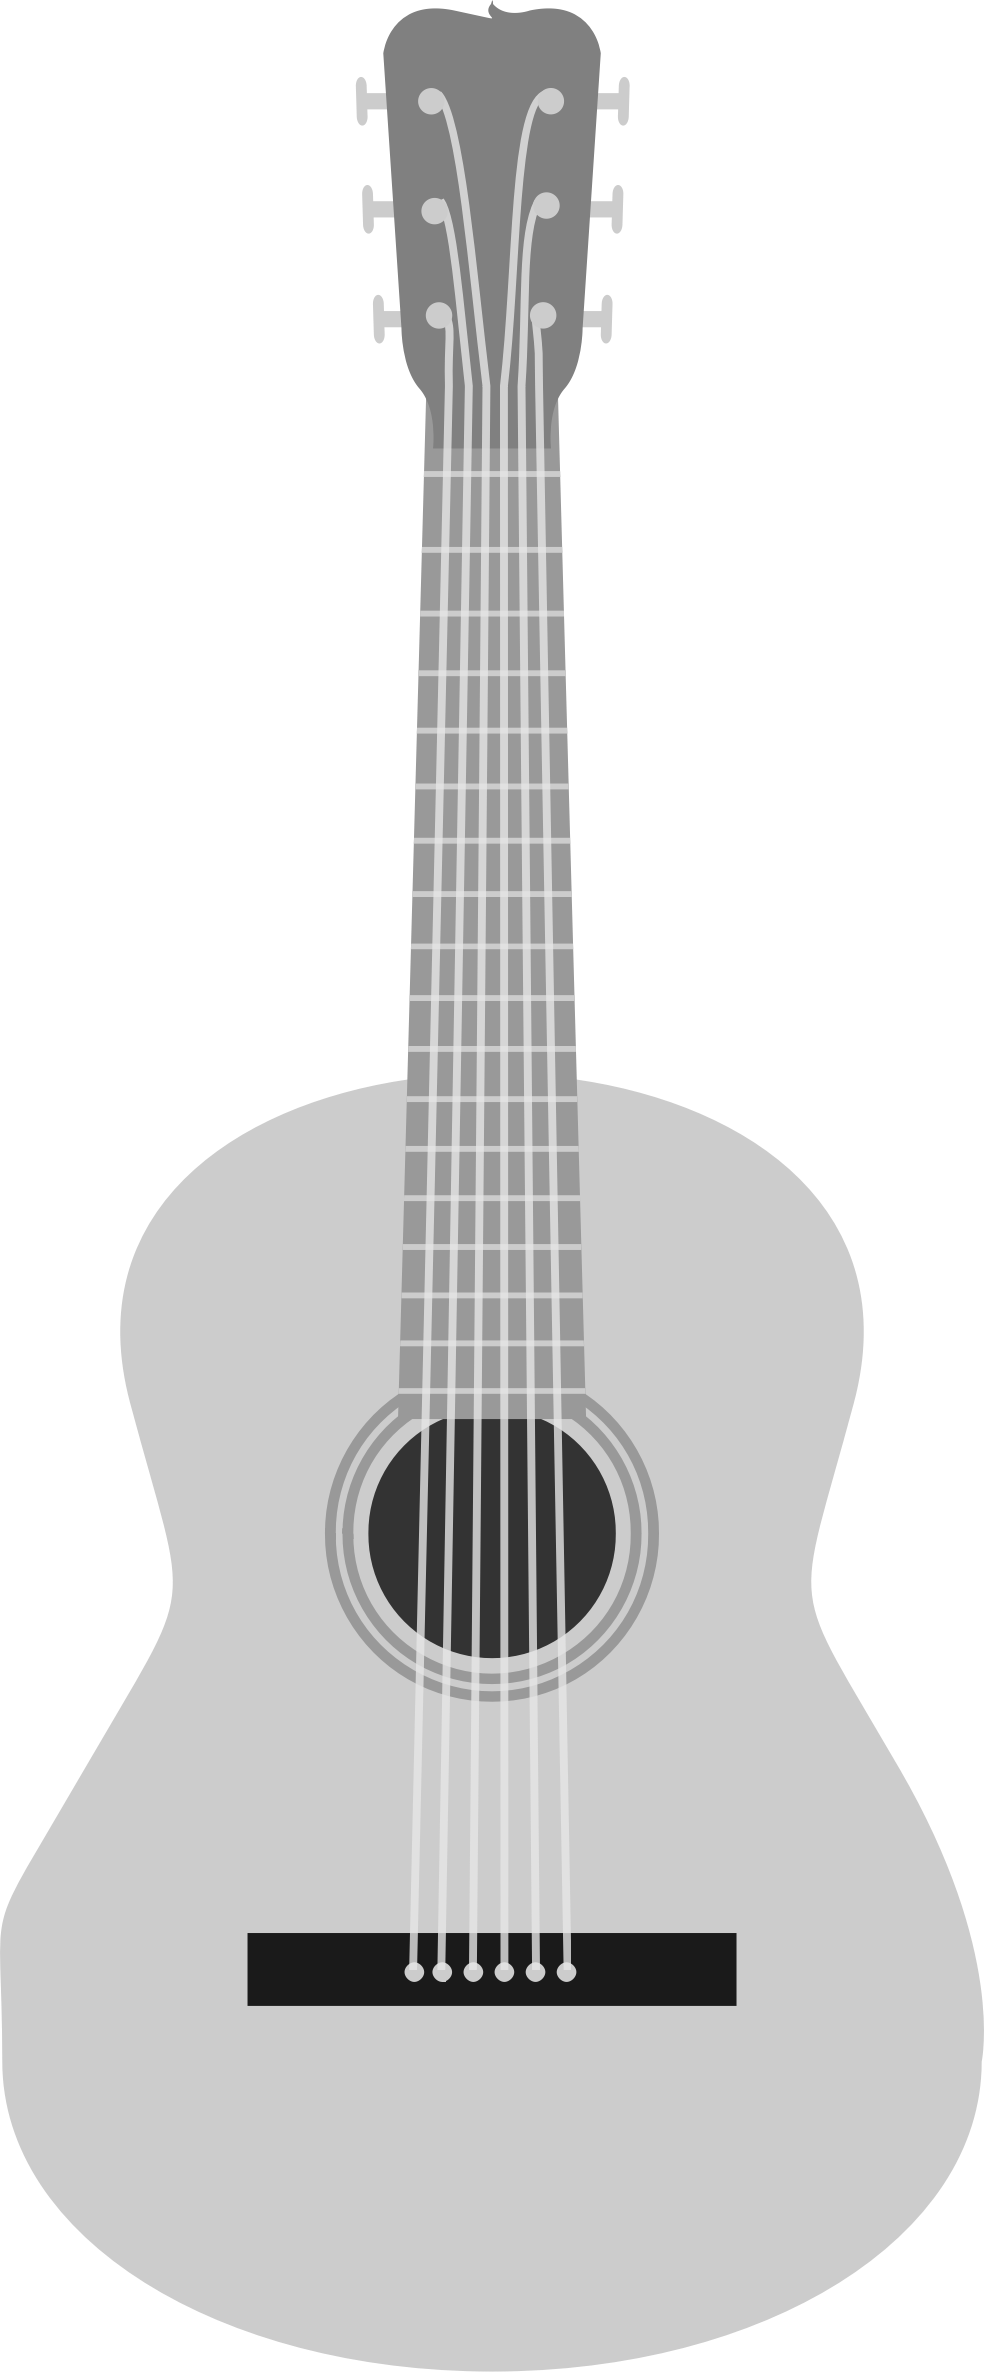 Acoustic Guitar PNG Black And White Transparent Acoustic Guitar